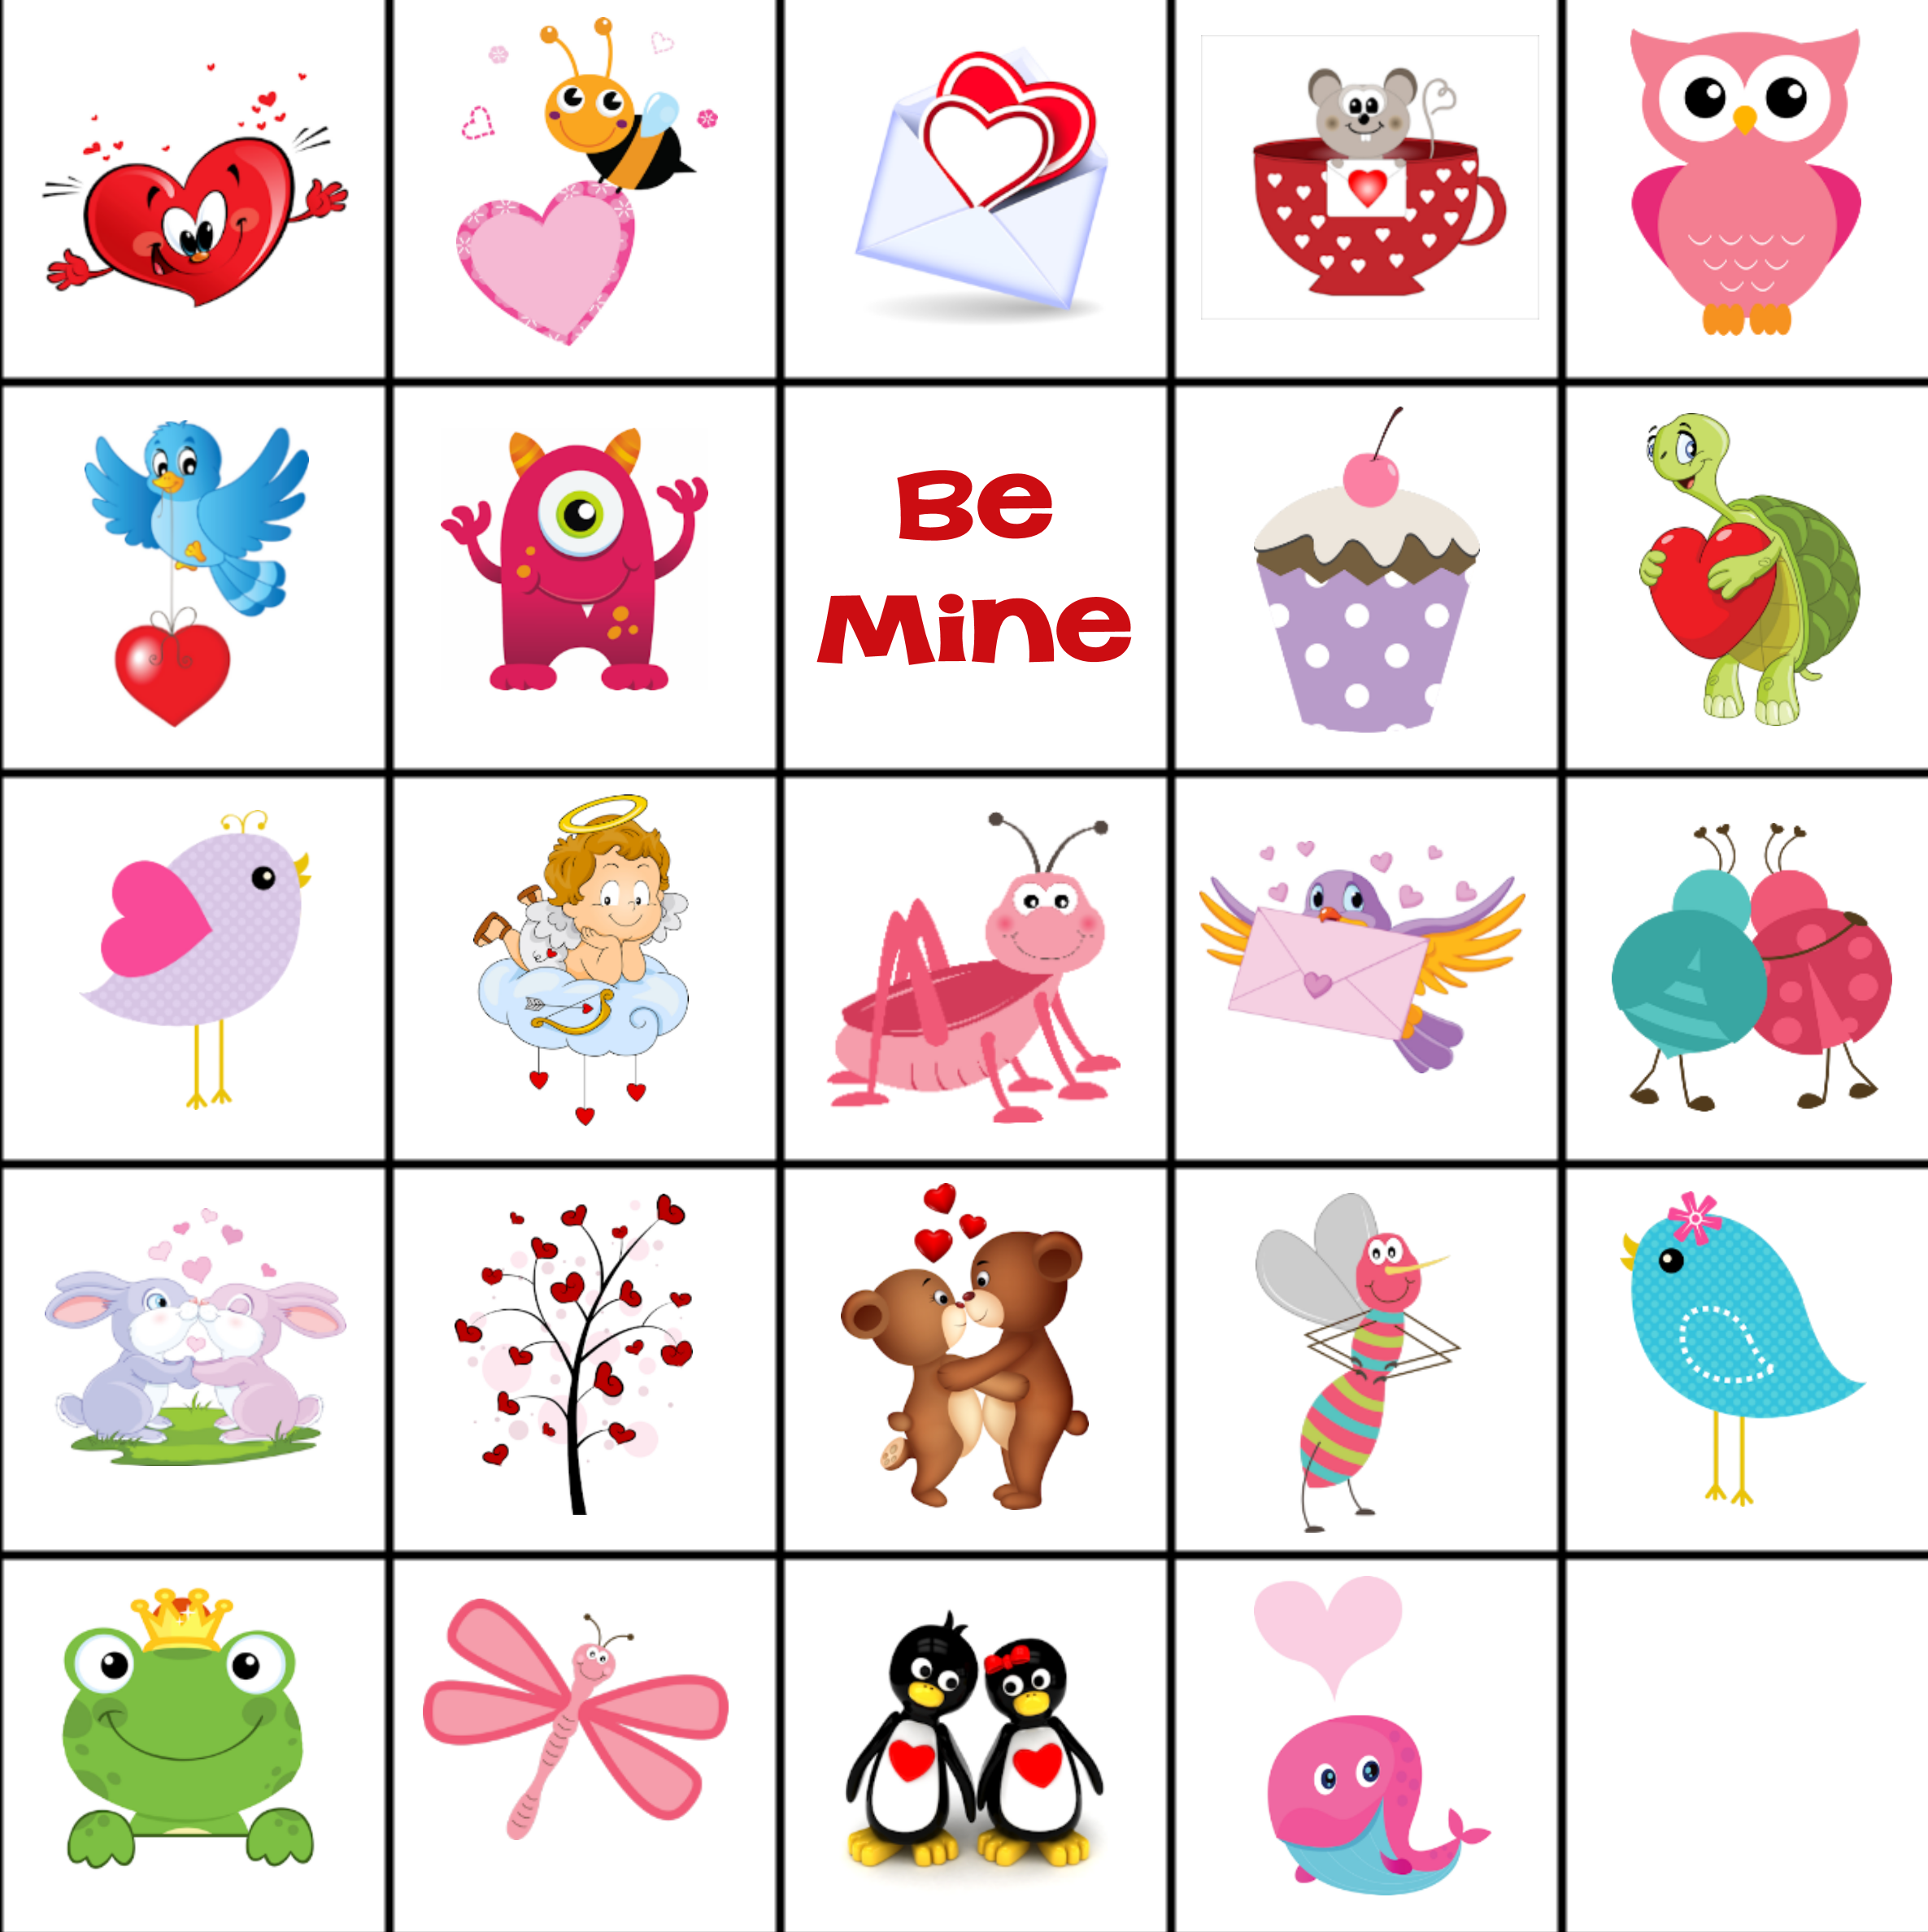 picture regarding Printable Valentine Picture identified as Cost-free Printable Valentine Memory Recreation